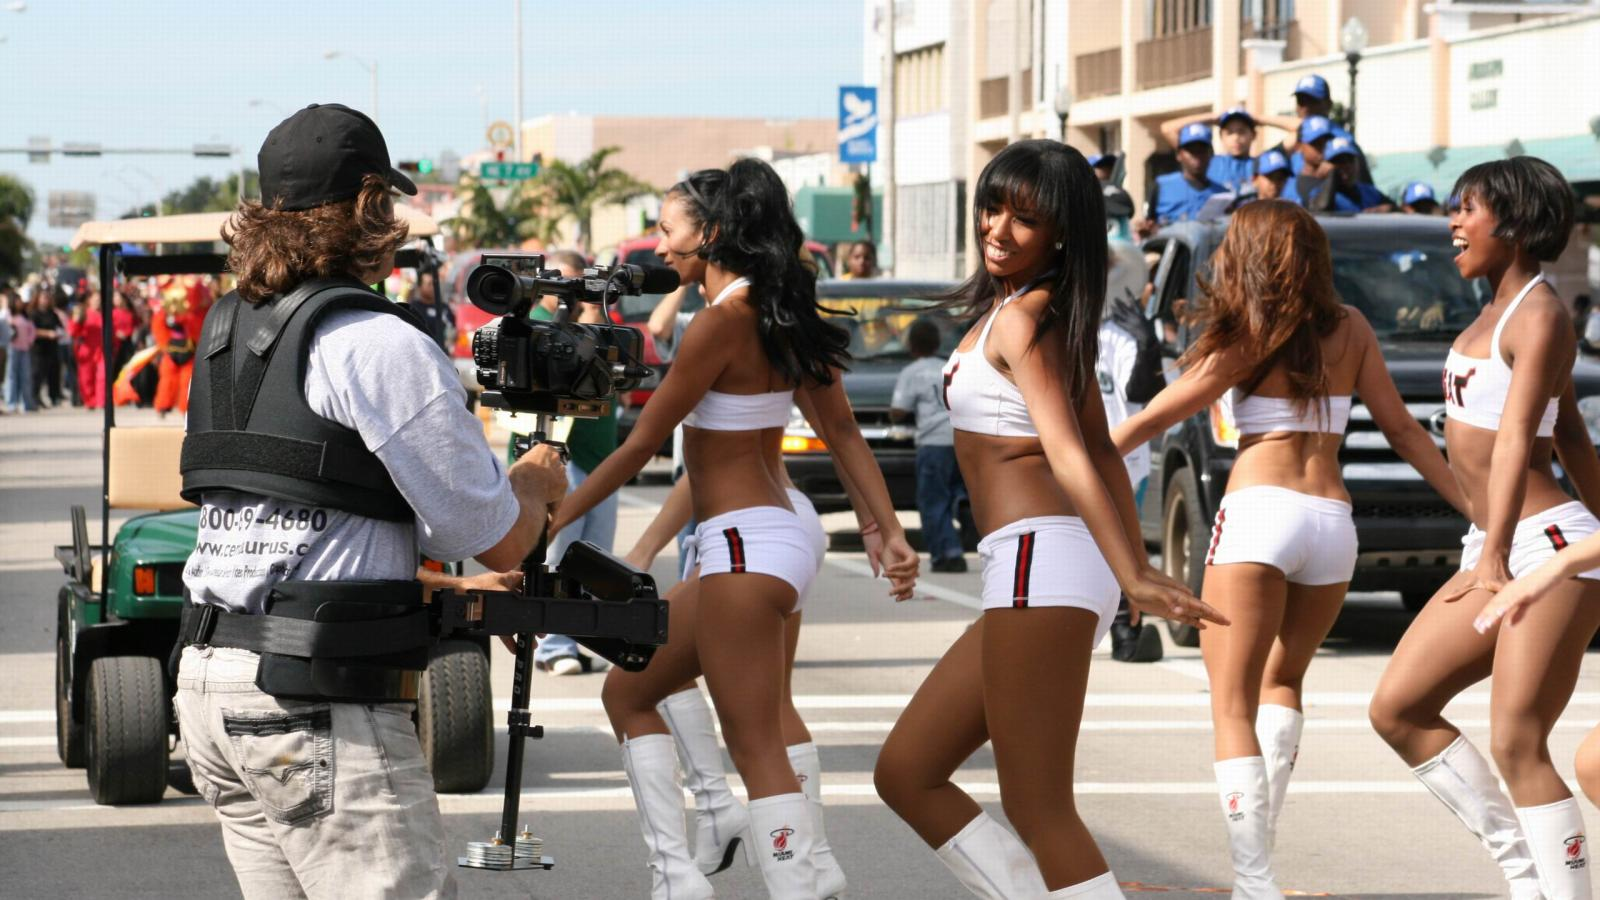 Miami Heat girls   United States  USA Pictures HD Wallpaper